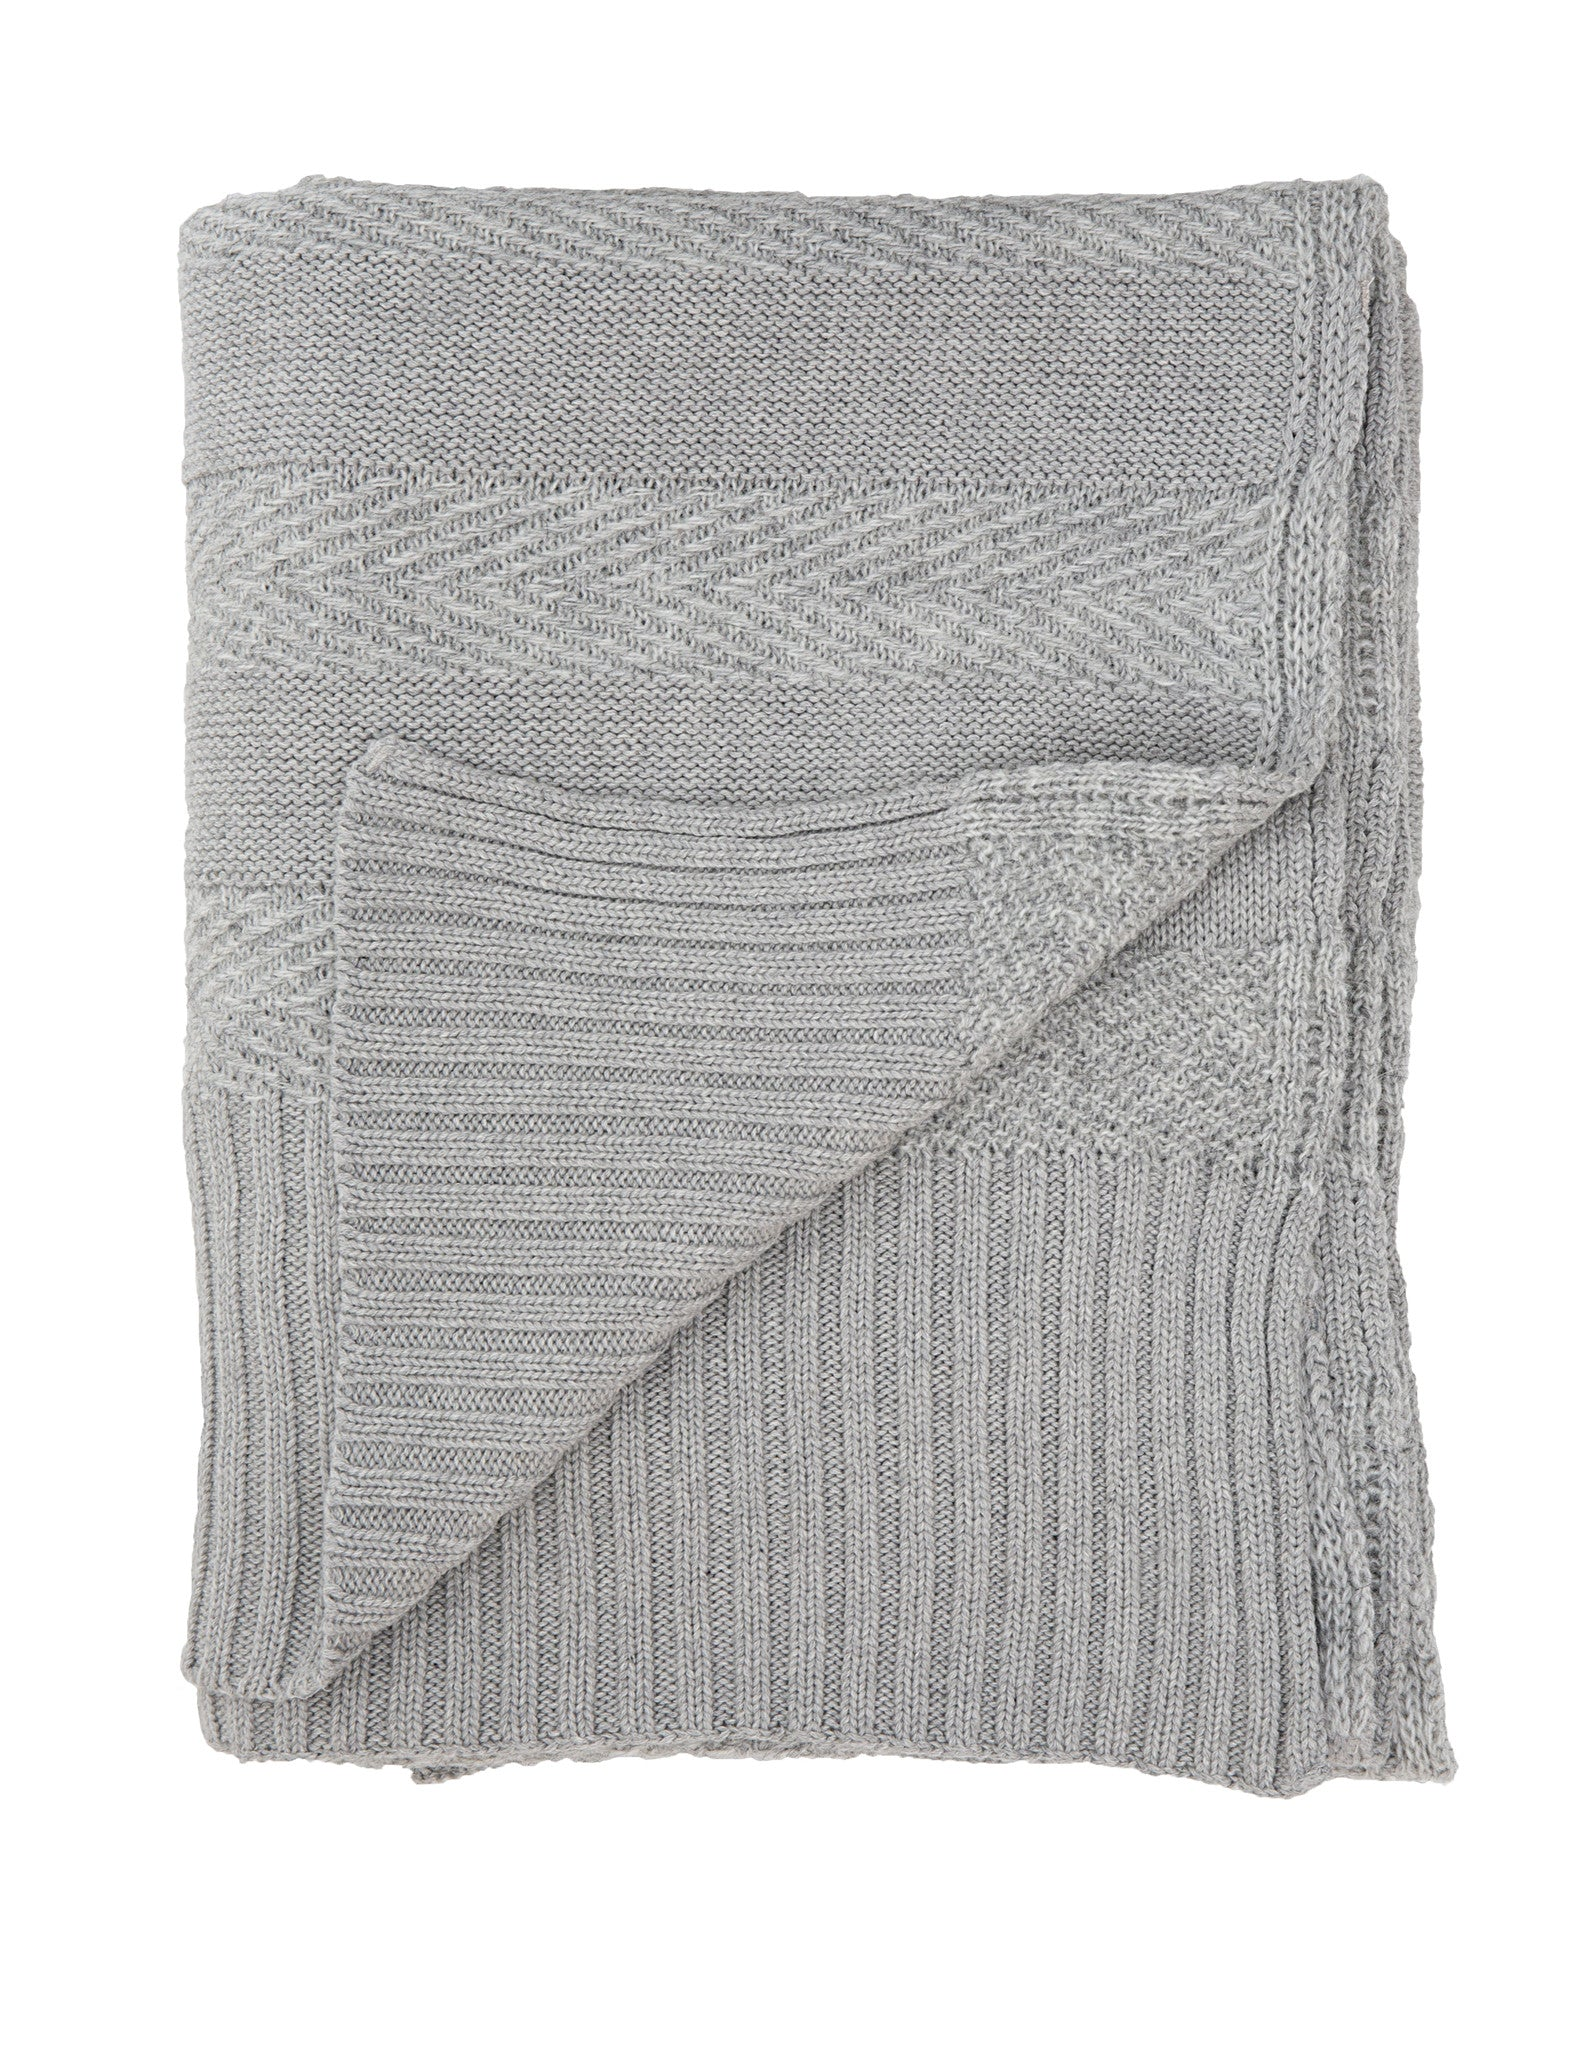 Tactile Stripes blanket, light grey